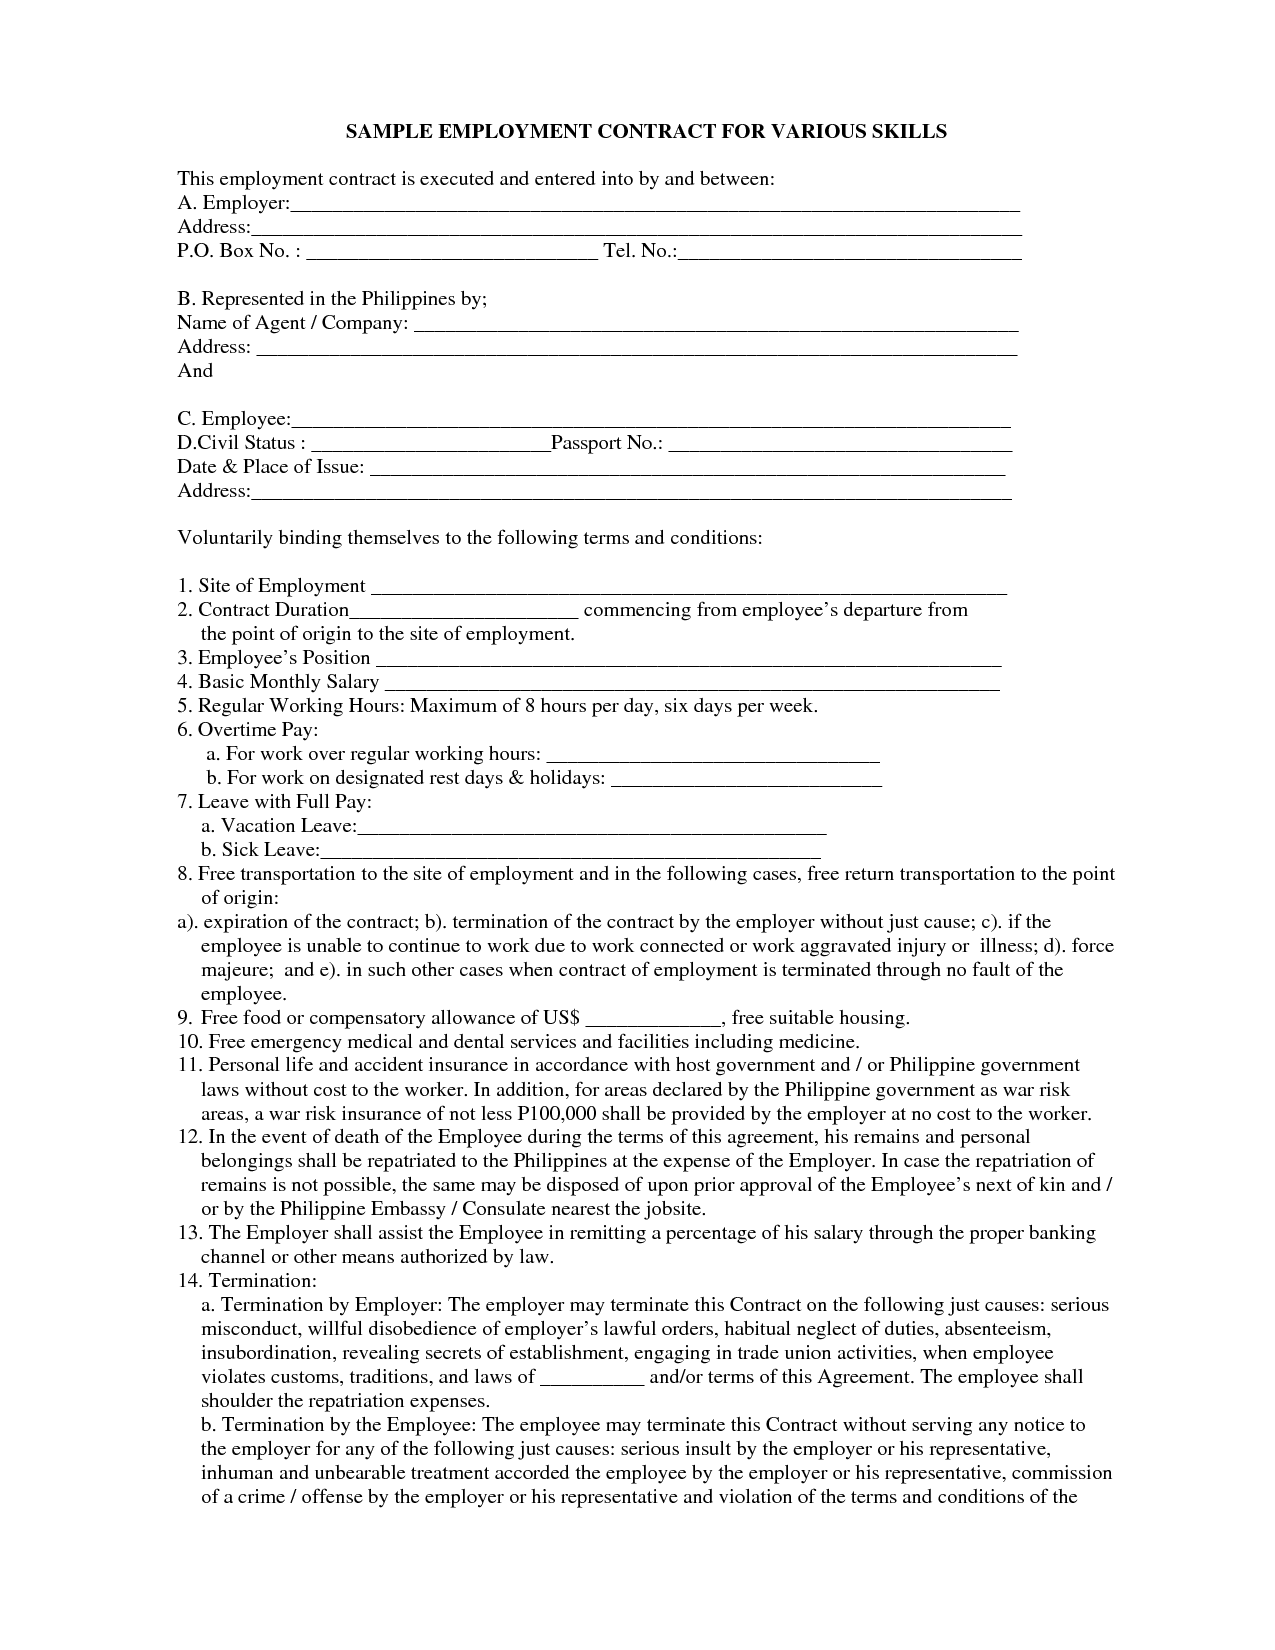 Employment Contract Sample Free Free Printable Documents Contract Template Contract Template Free